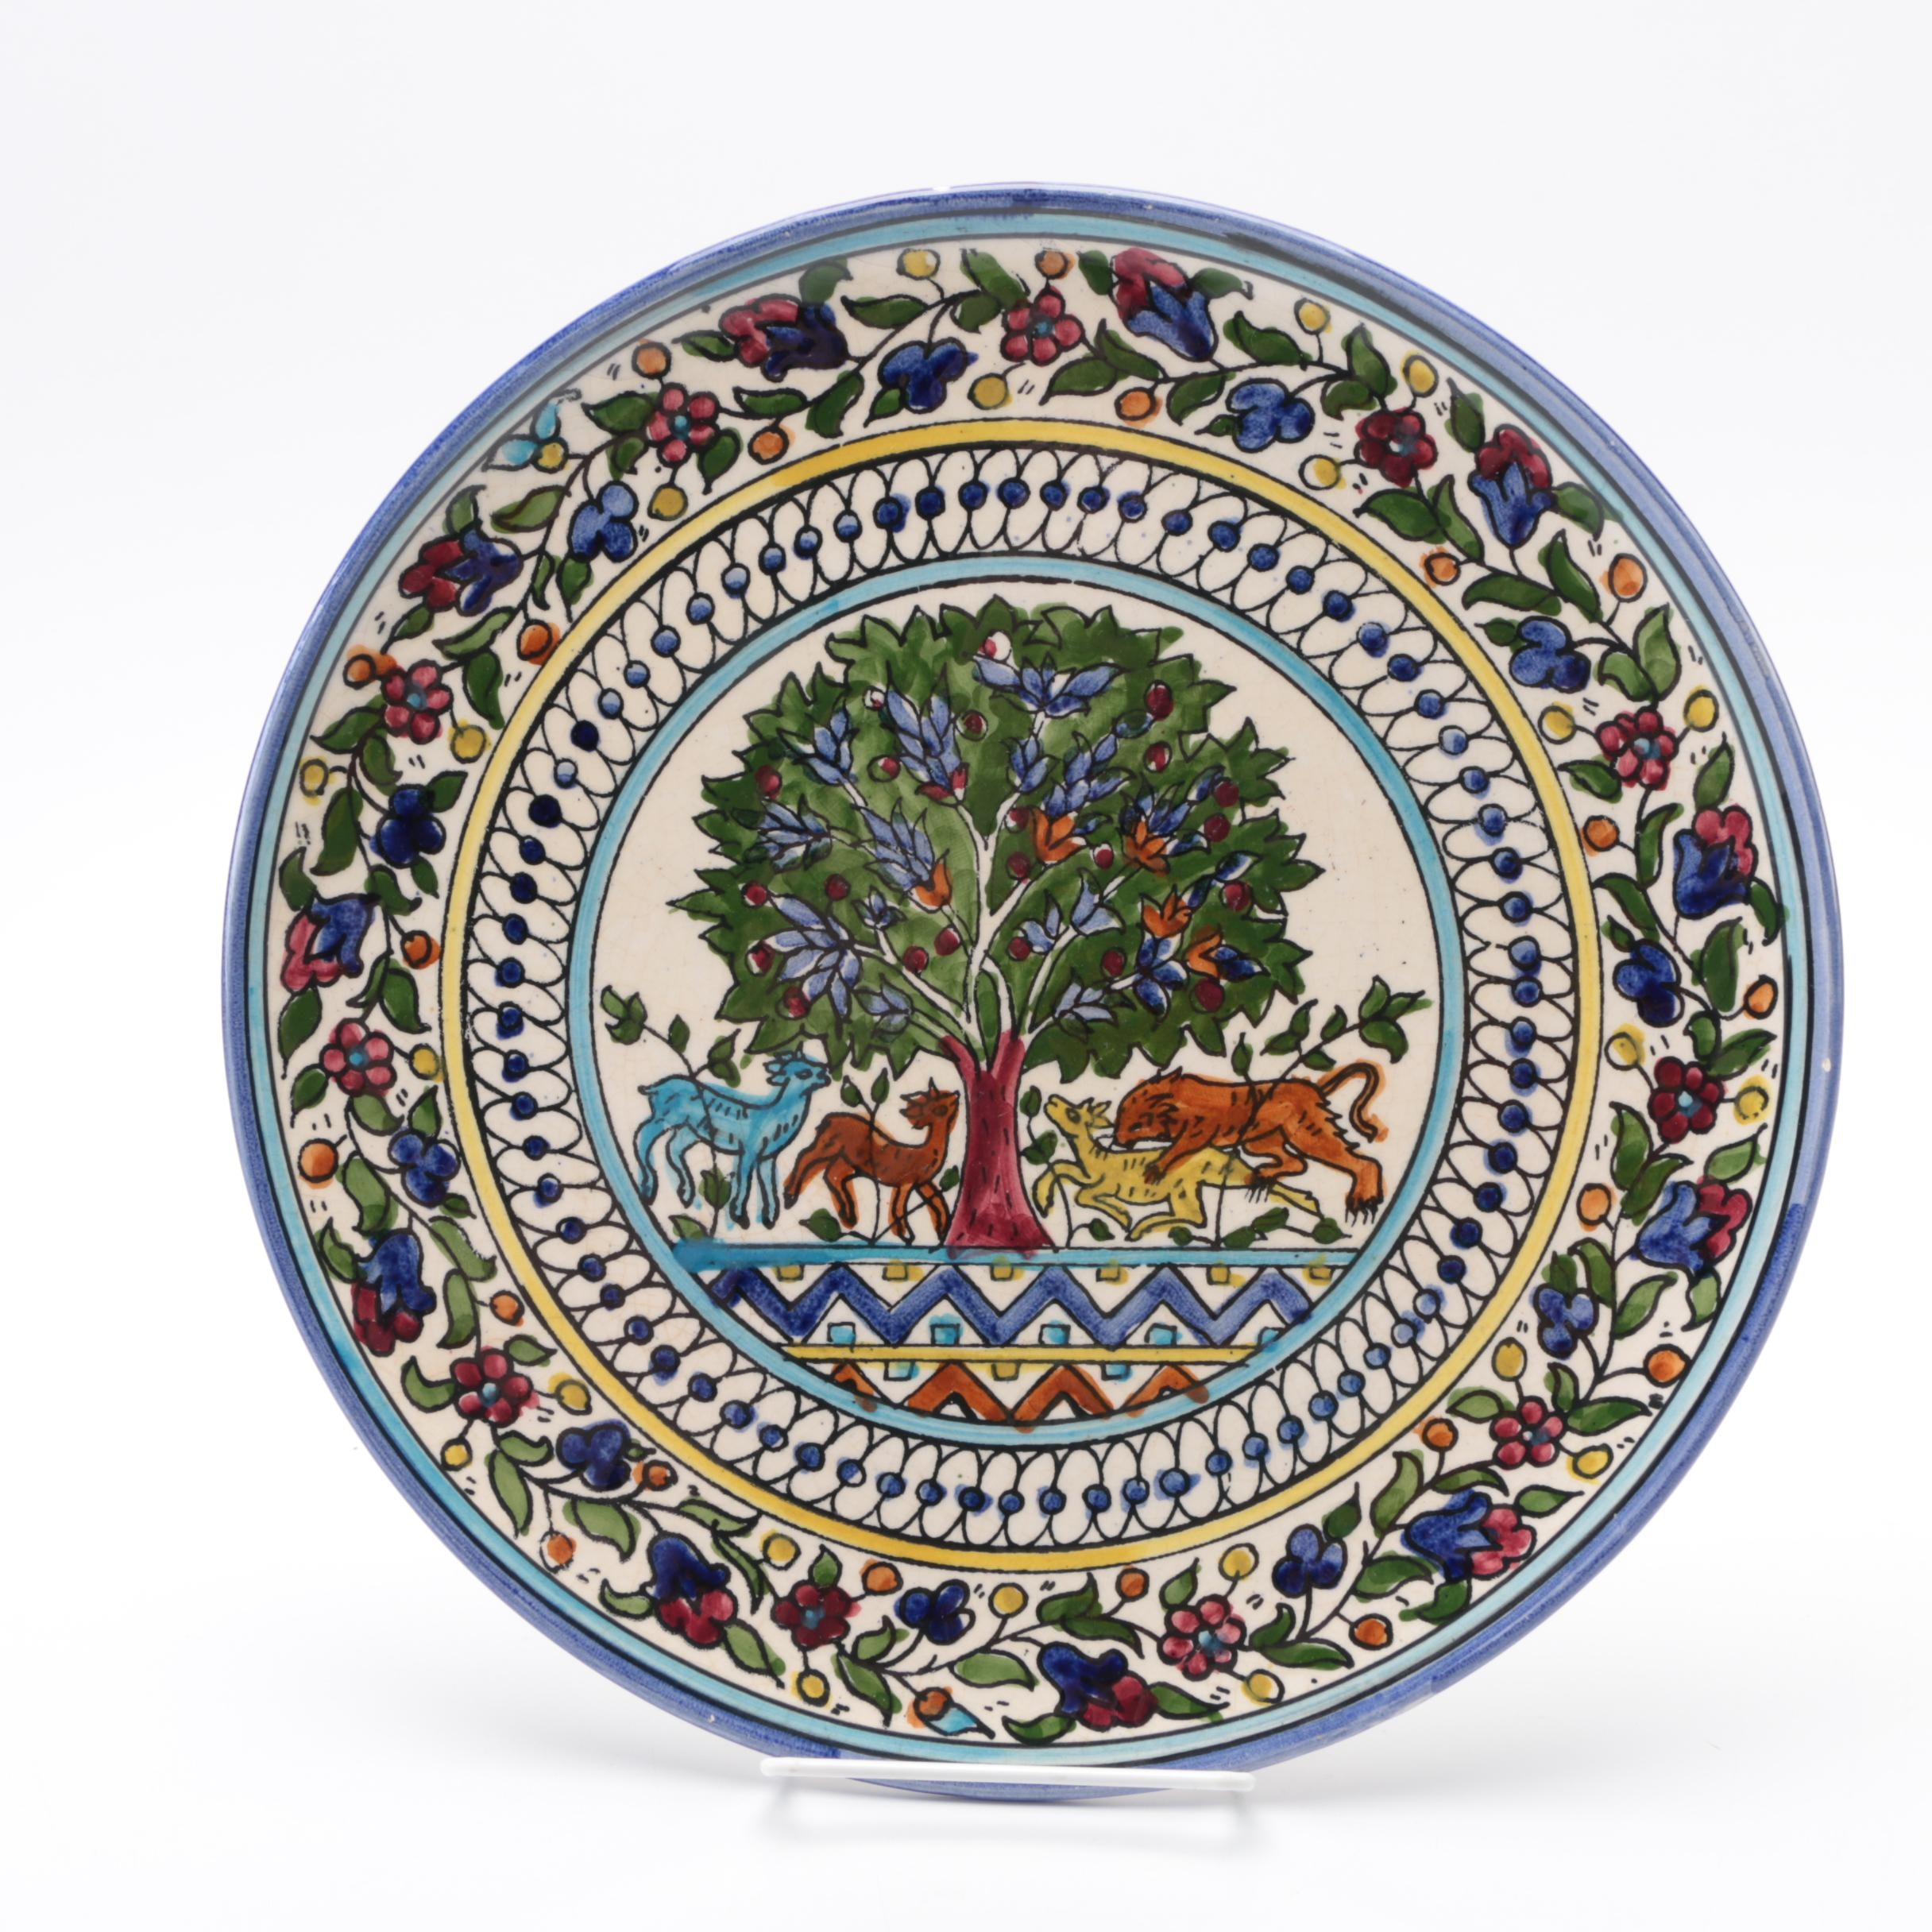 Decorative Faïence Plate